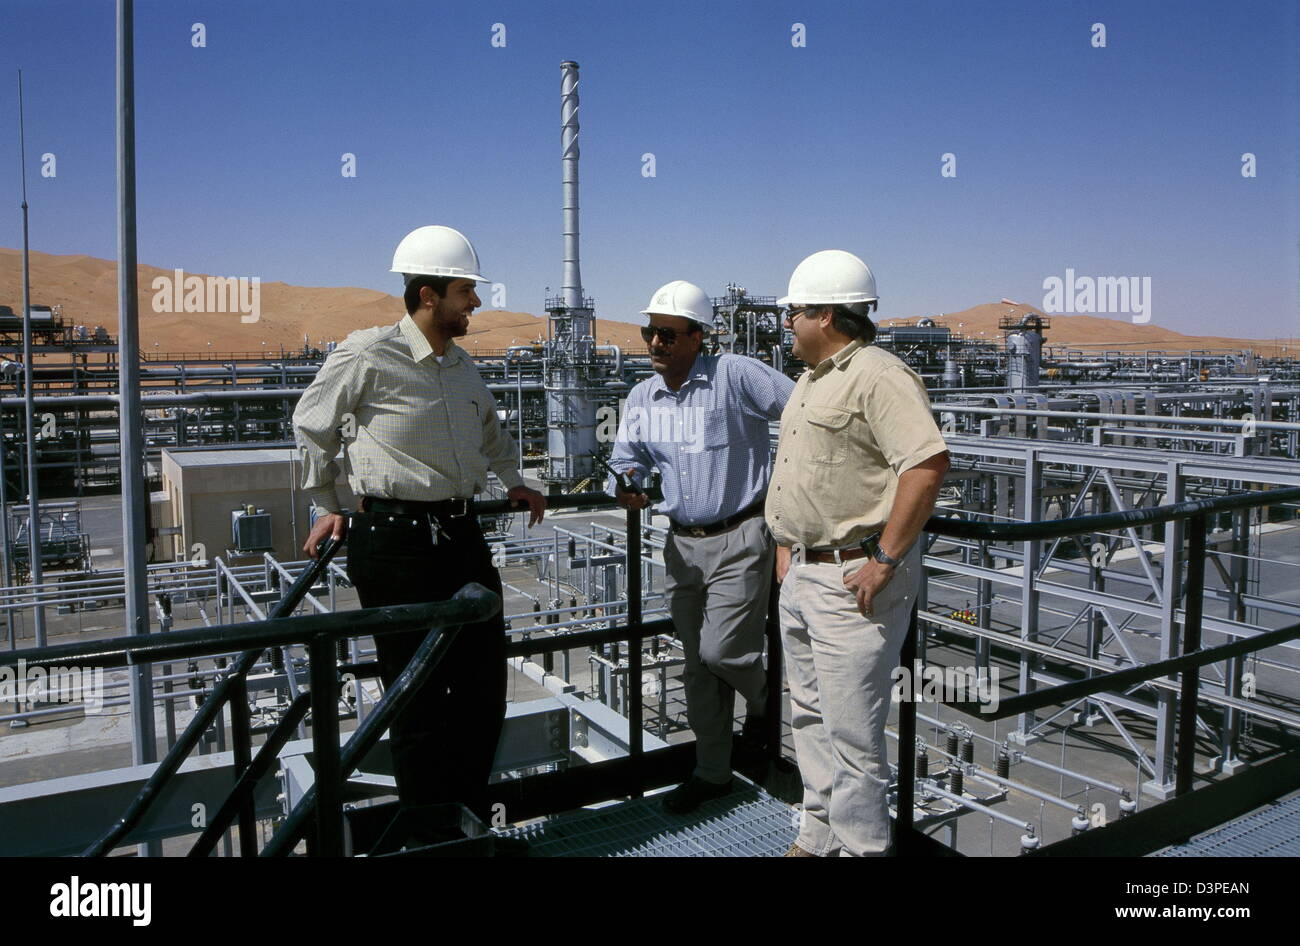 budgeting at aramco For aramco eprl concentrated on detailed reservoir performance  edict so  aramco was budgeting for compressors - with no payout in sight.